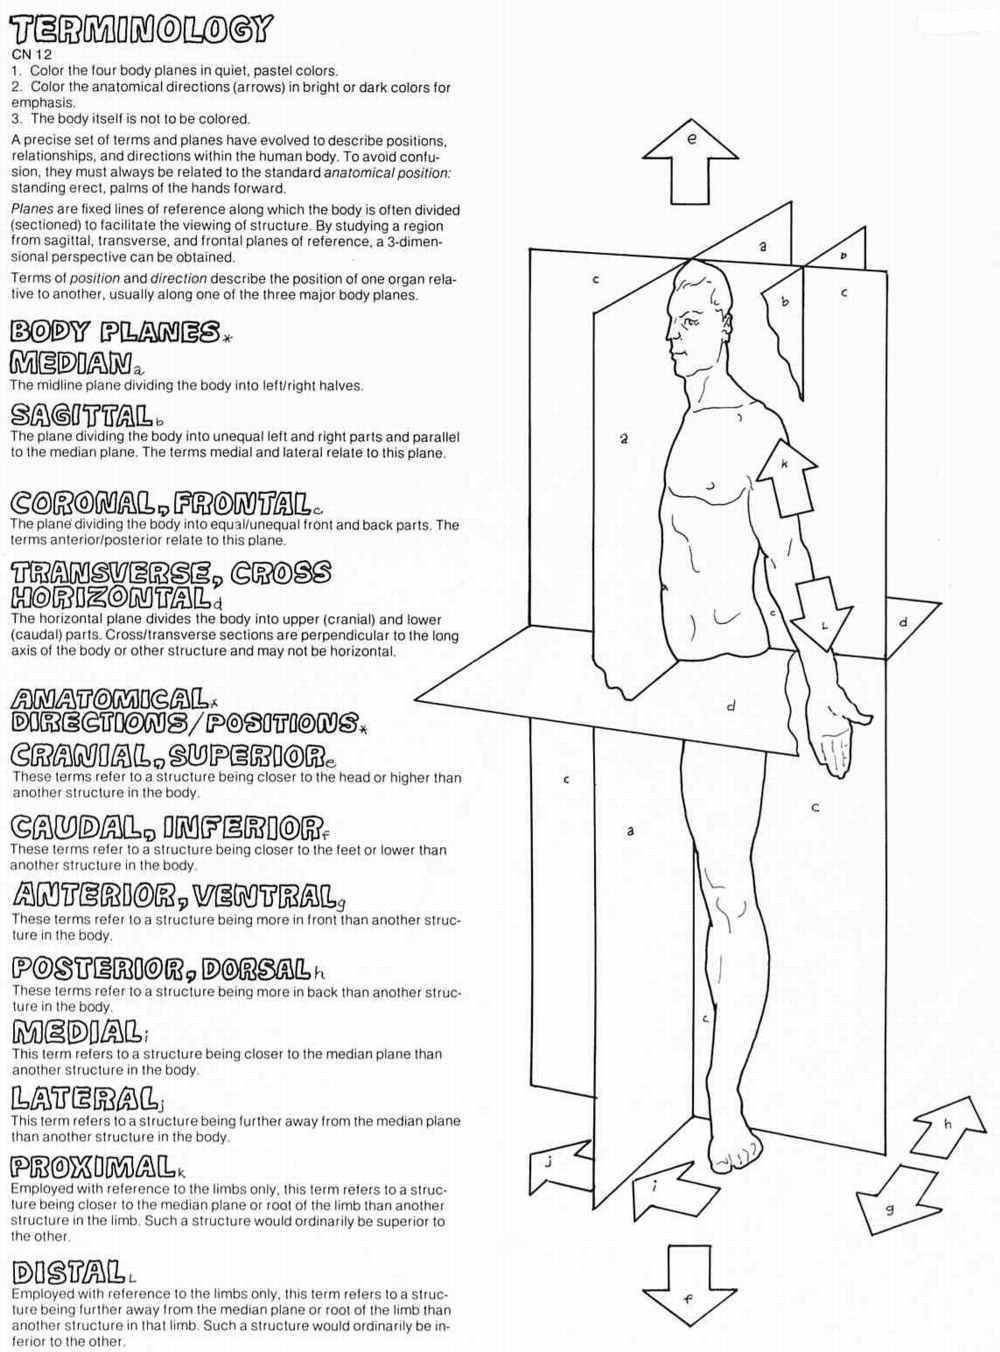 Image Result For Anatomy And Physiology Orientation And Directional